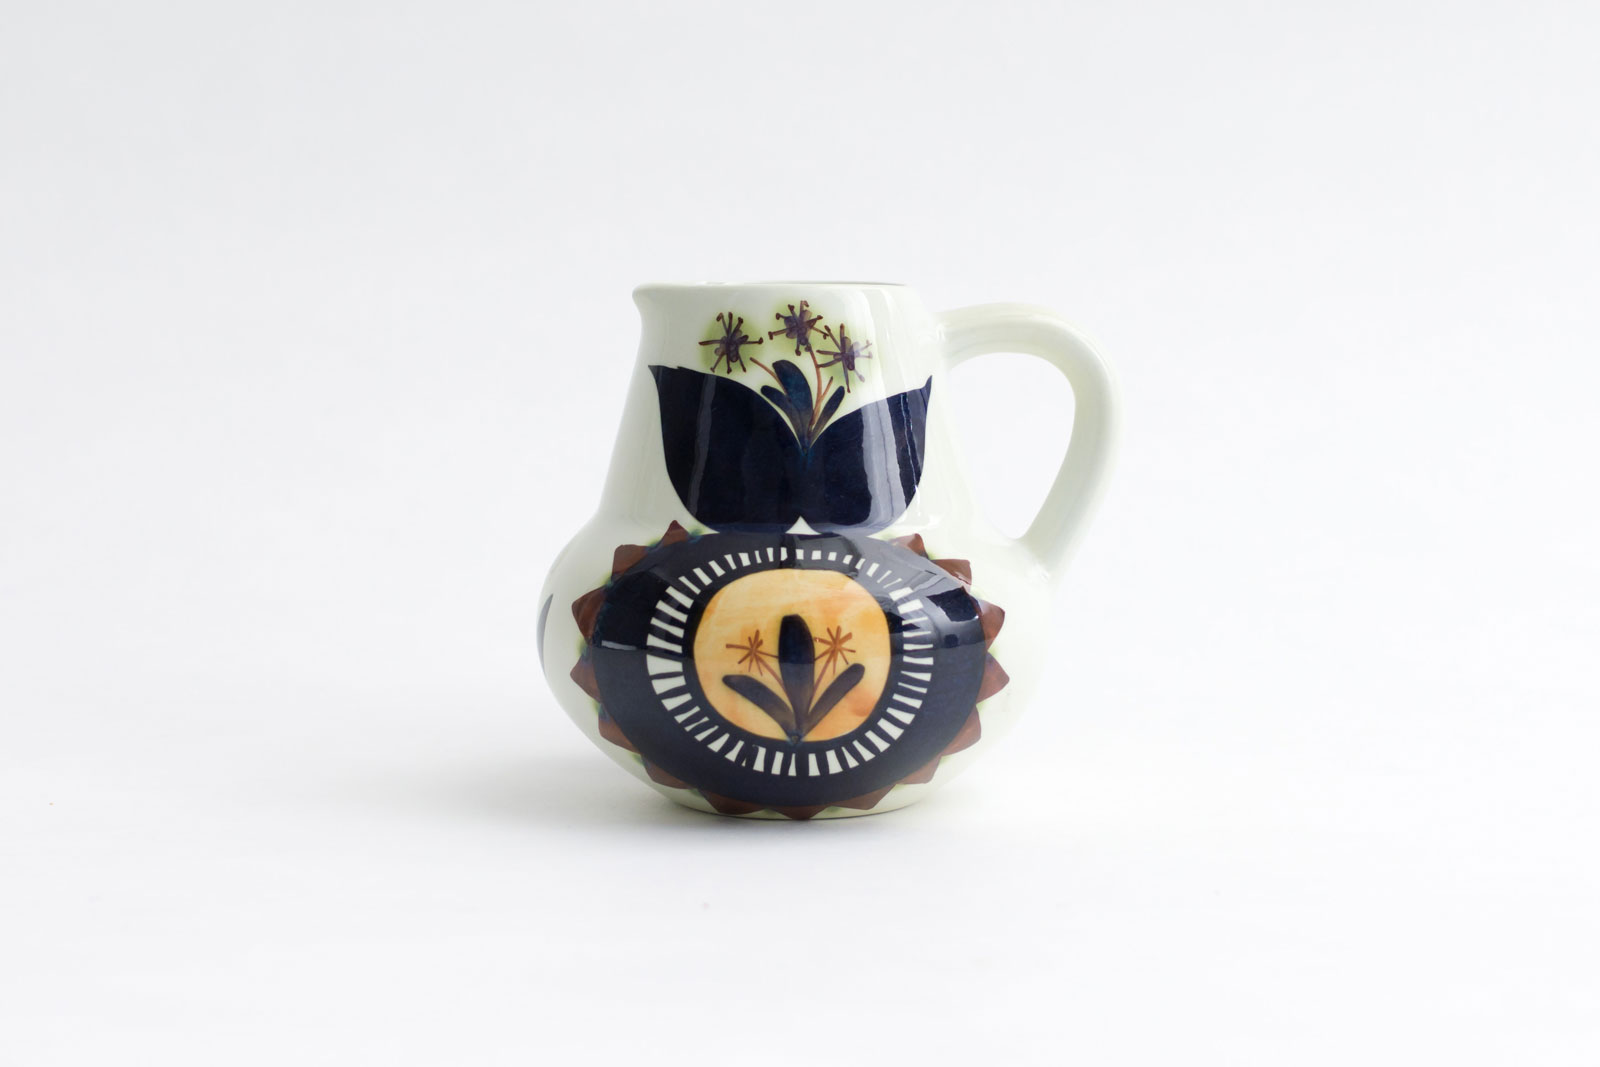 Jug designed by Marianne Johnson